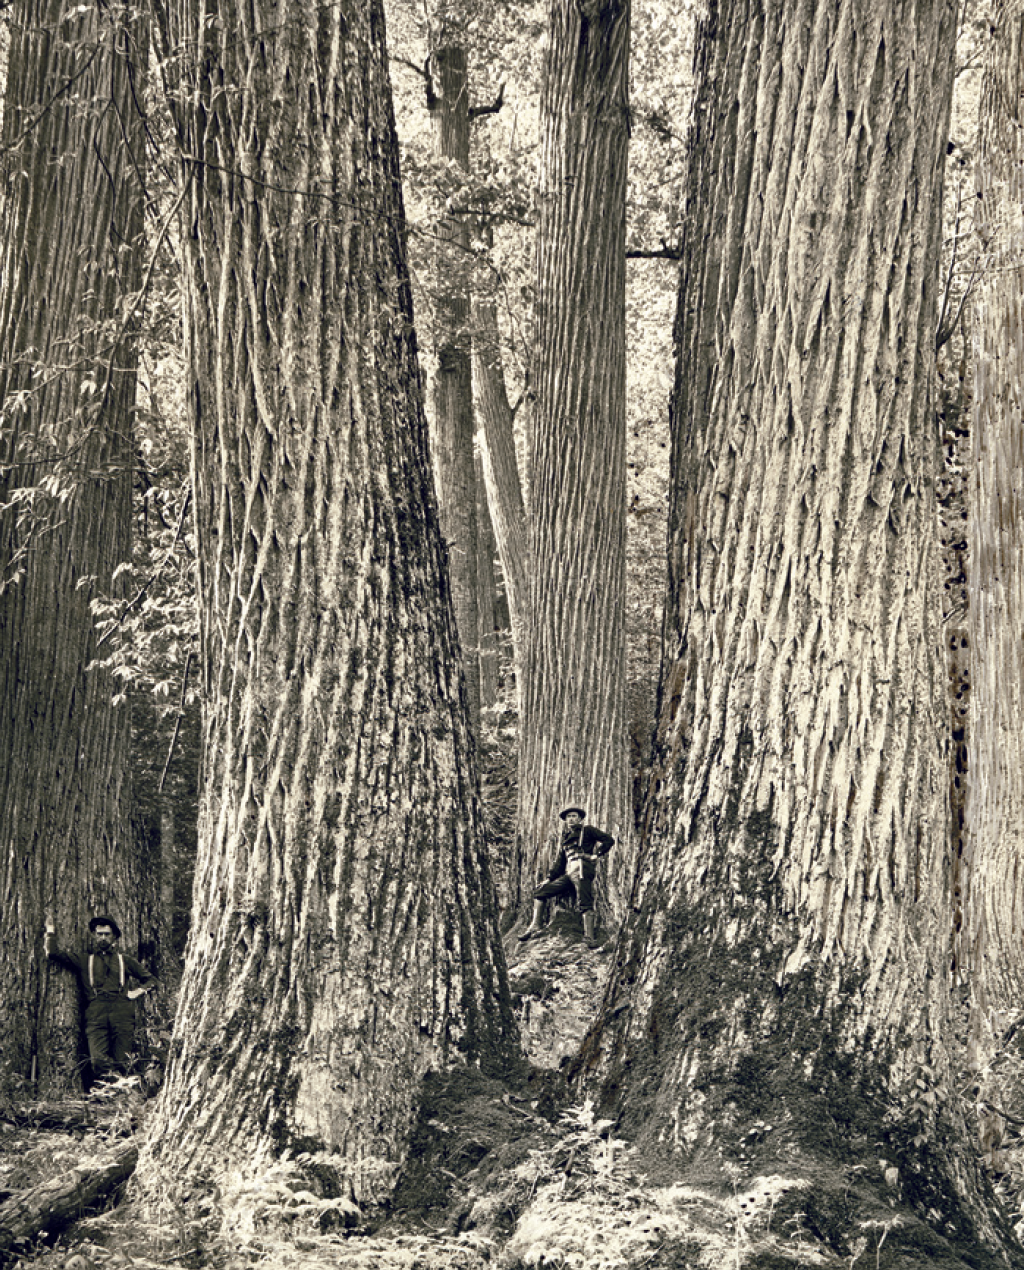 The Eastern giants before the fungal invasion. These trees once dominated our ecosystems. From  Thompson 2012 .